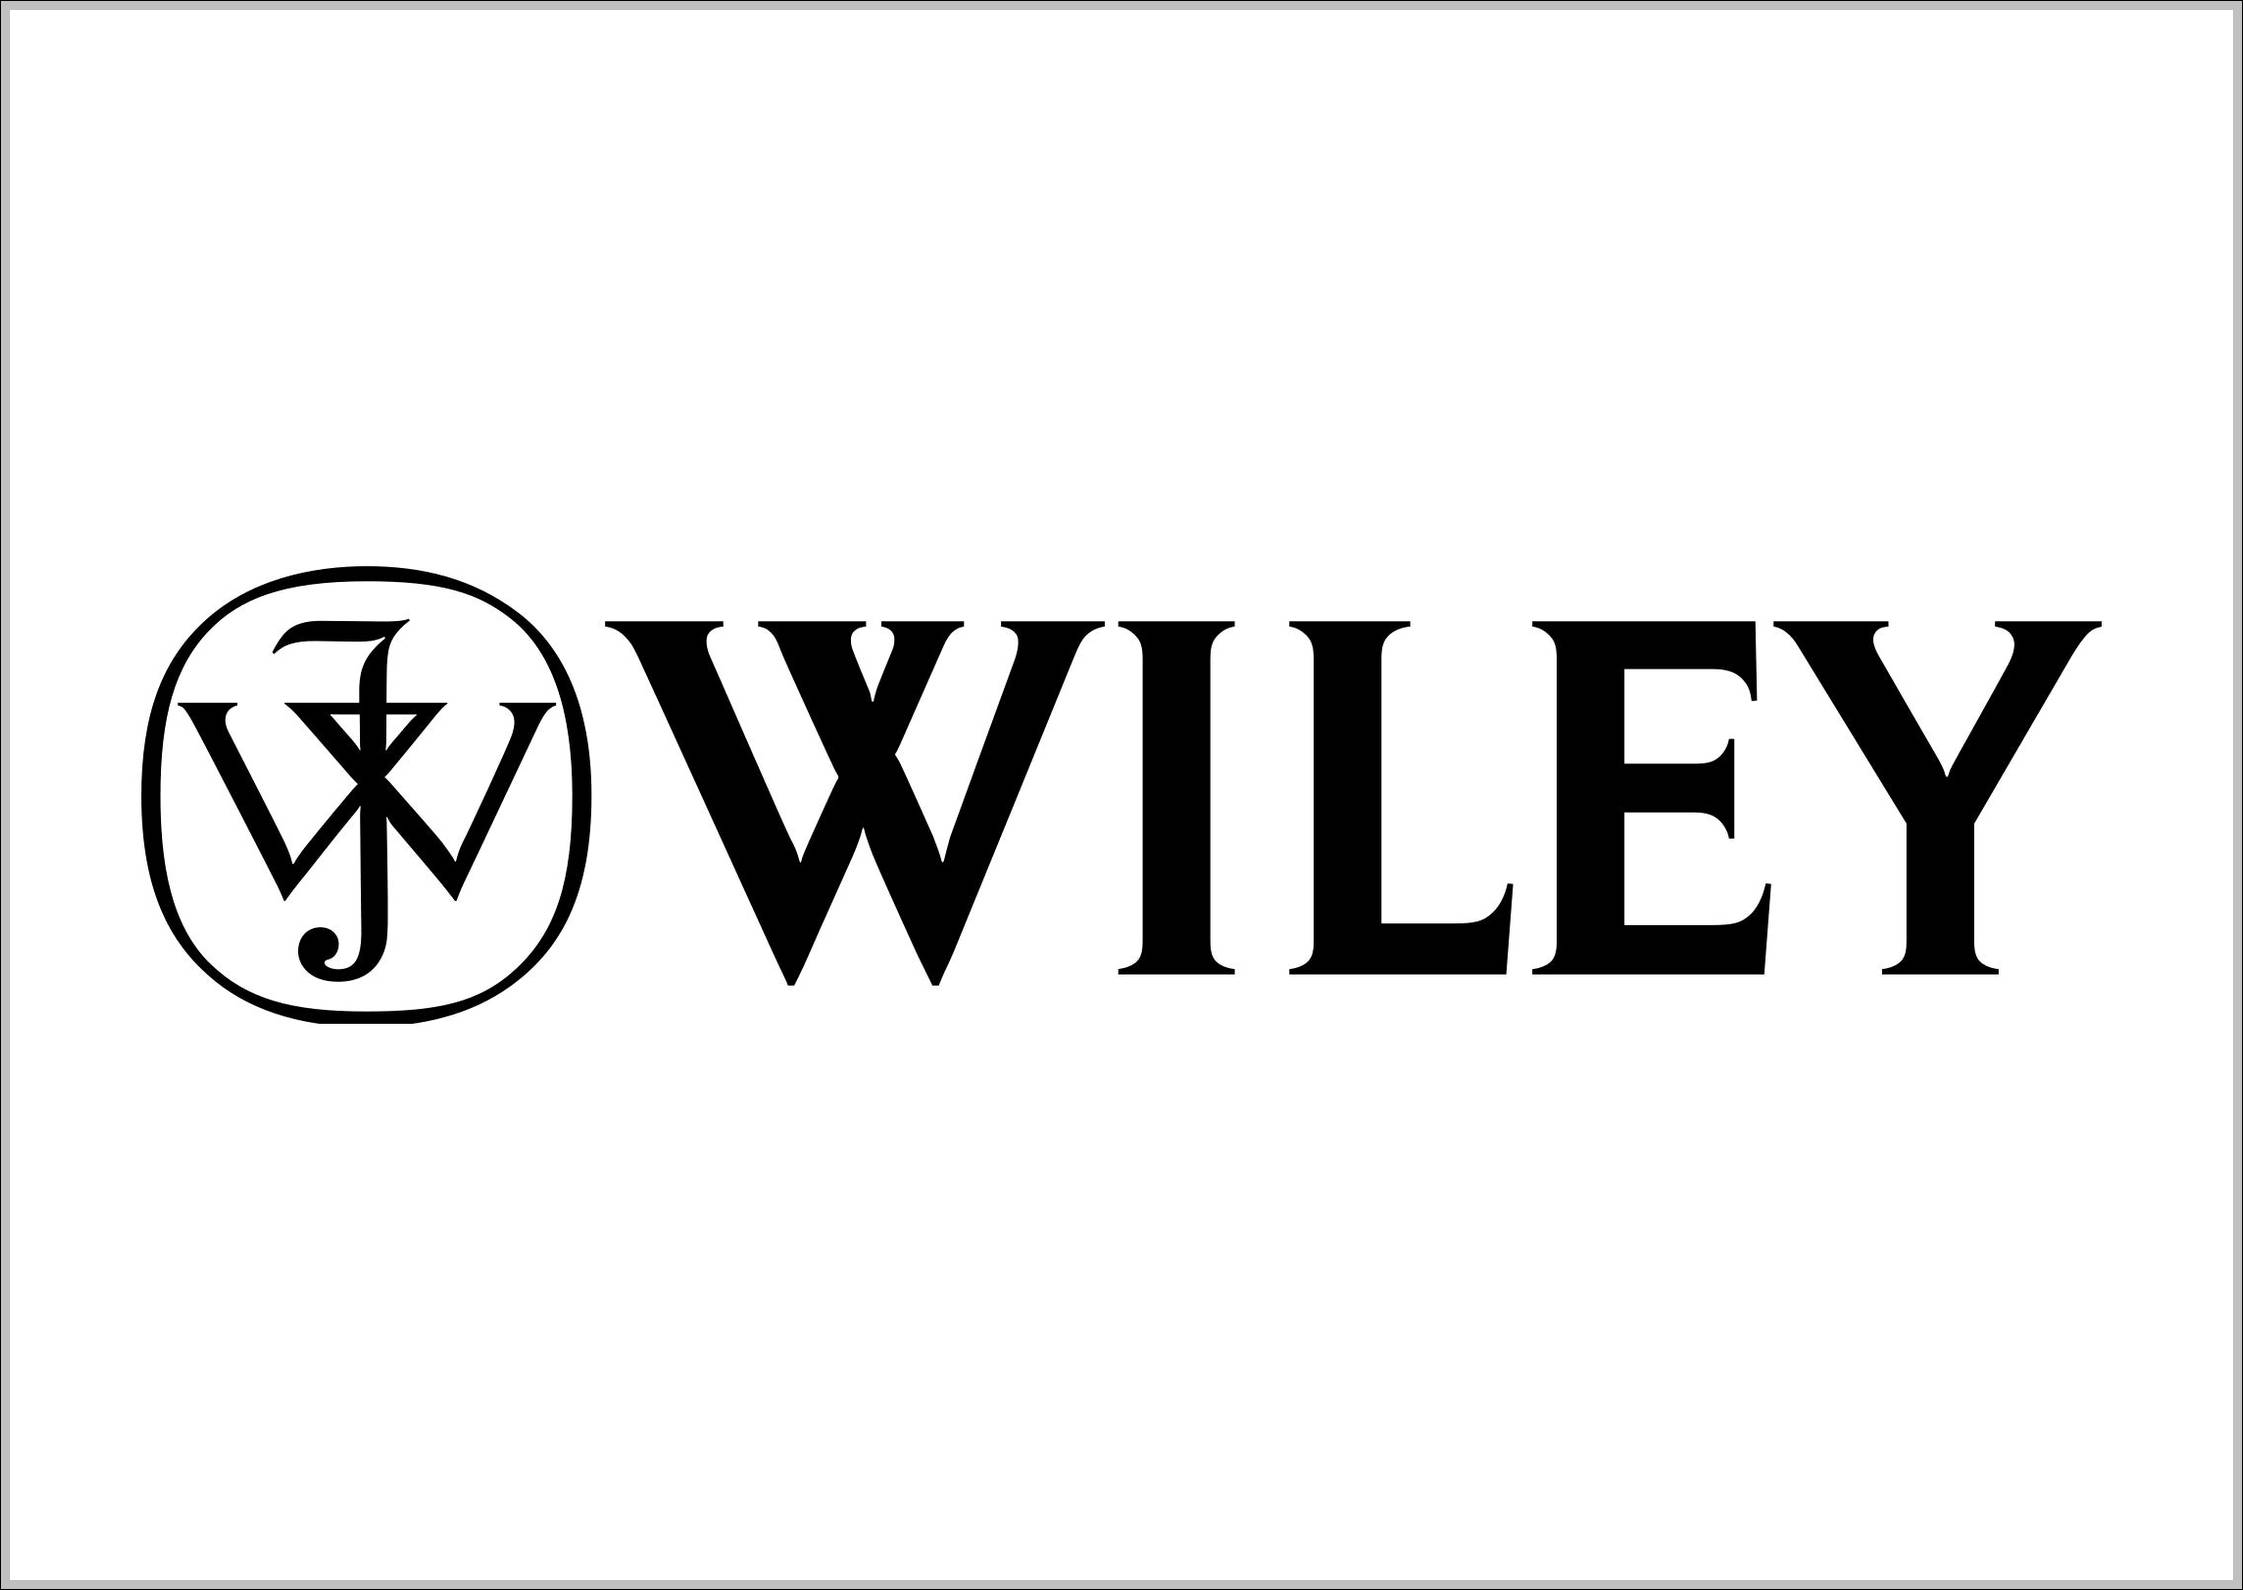 wiley brand